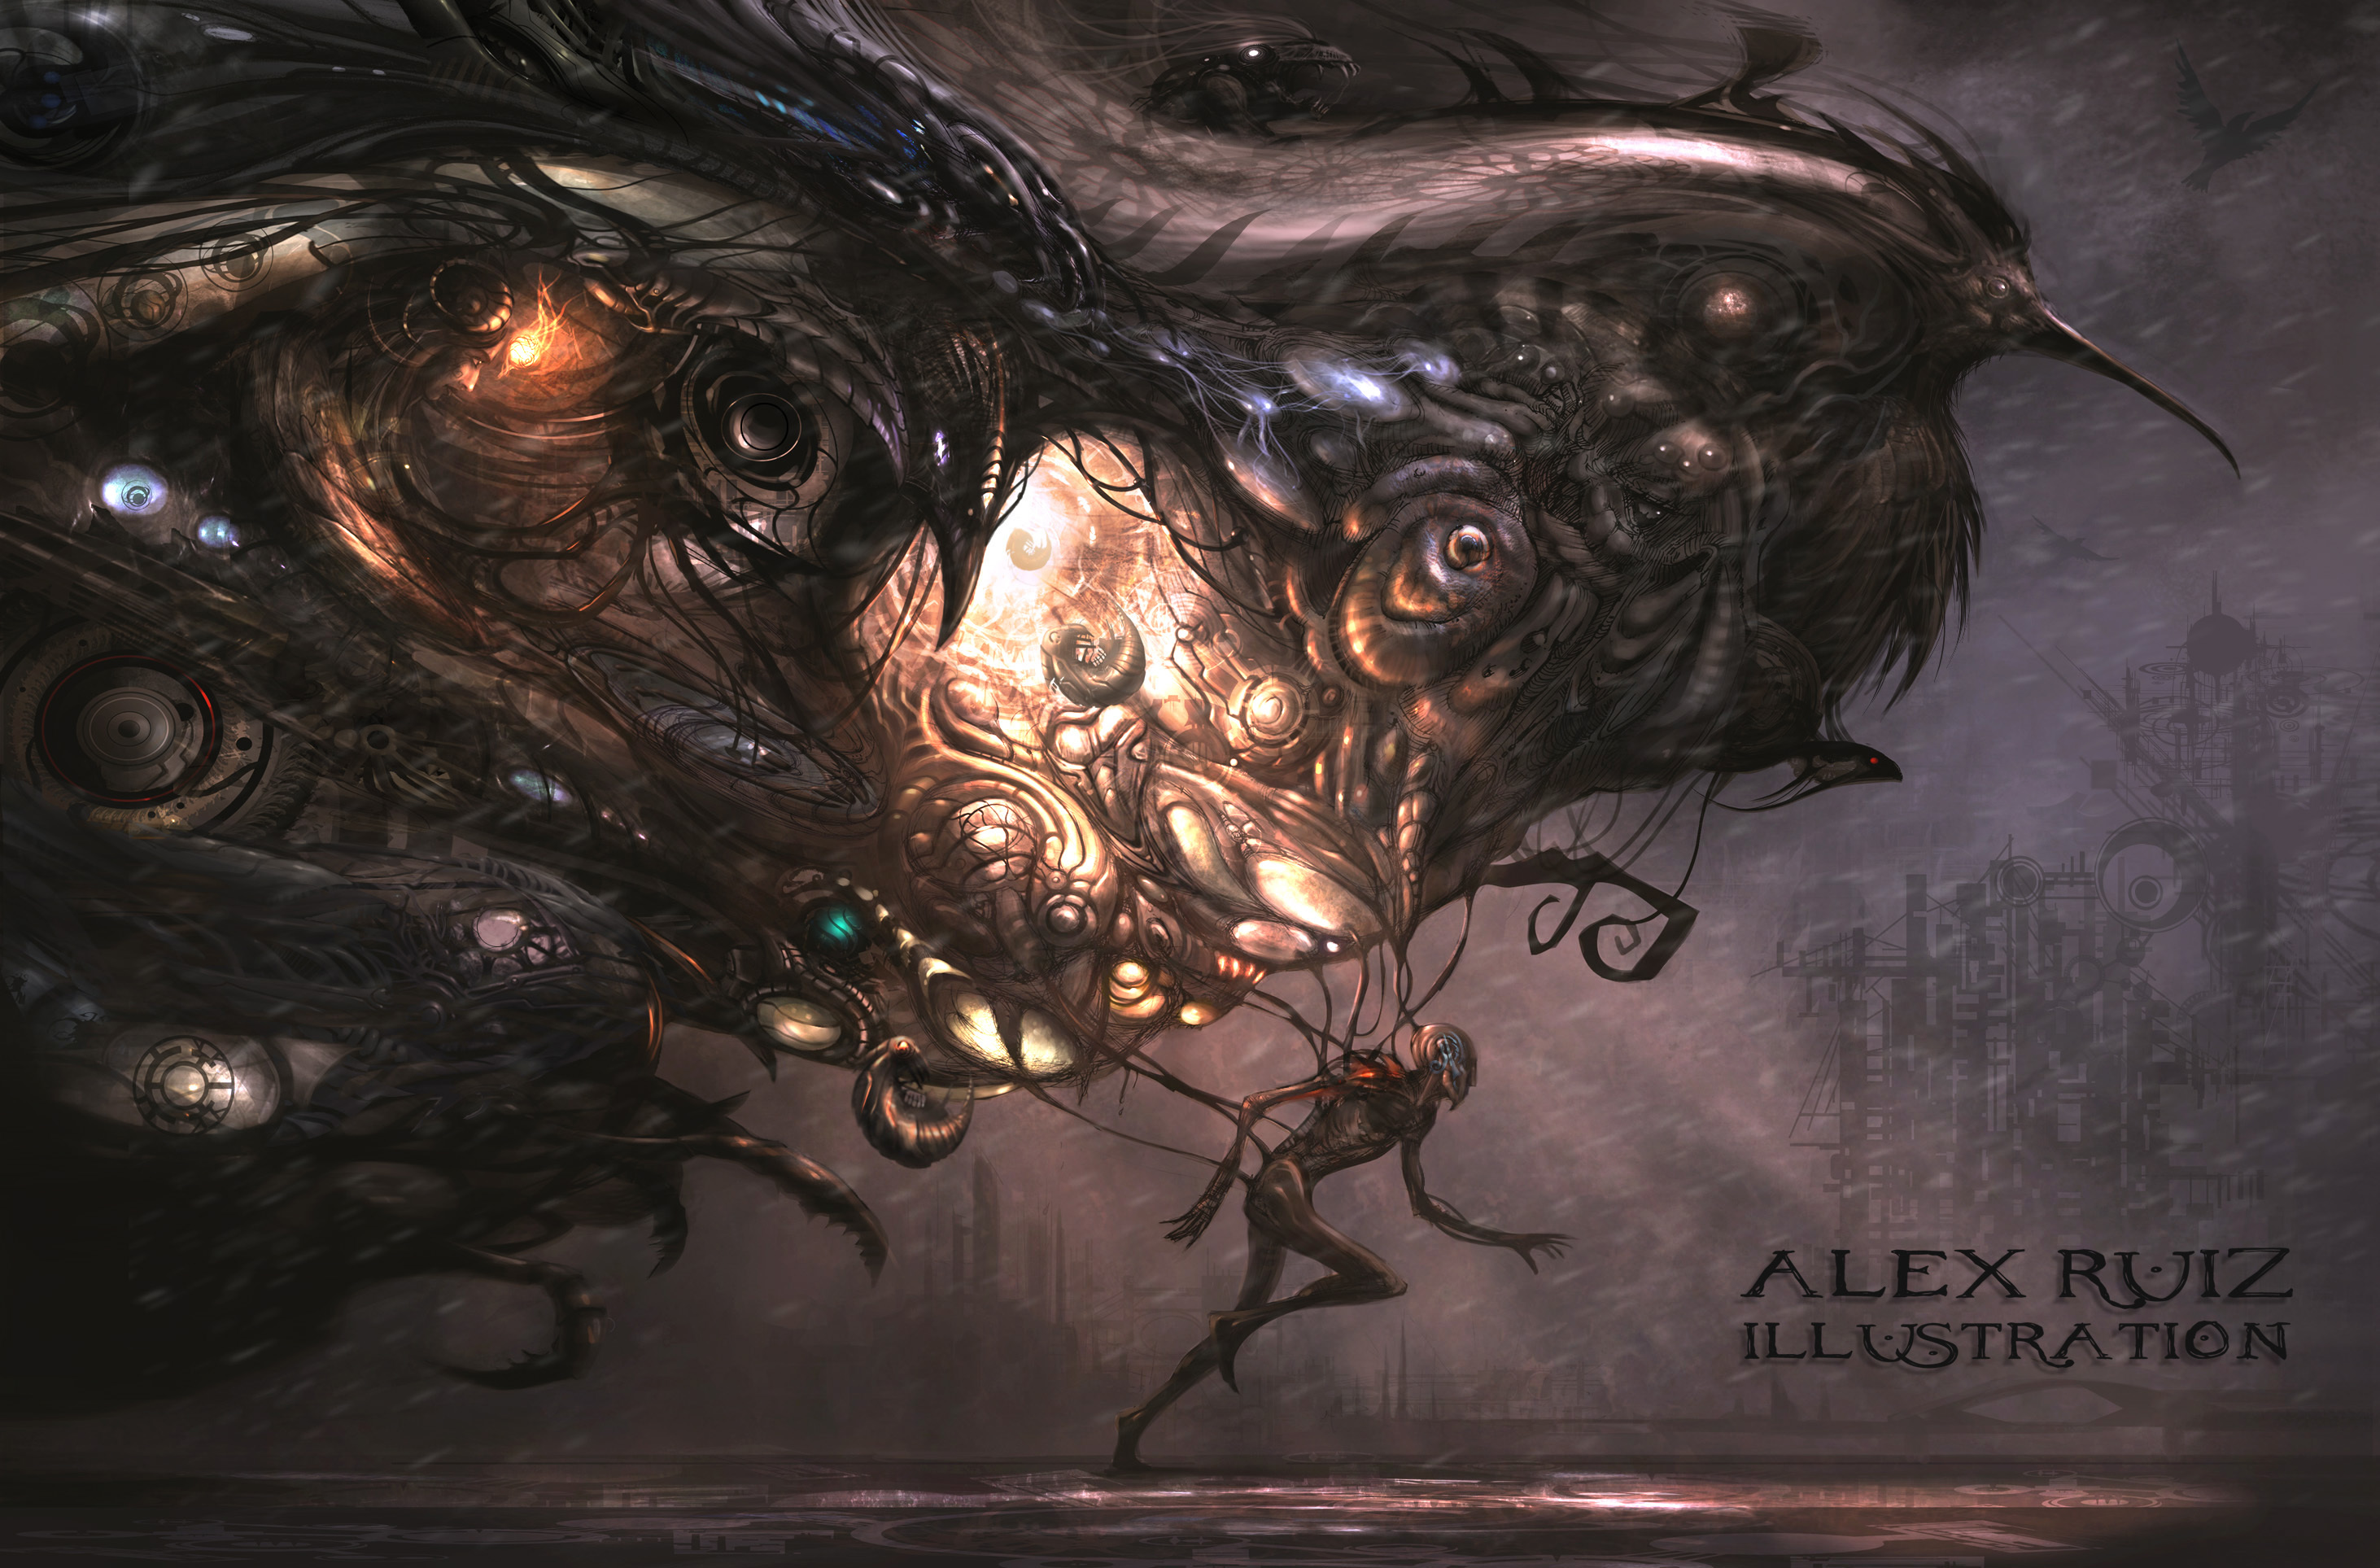 Alex Ruiz artwork HD Wallpaper